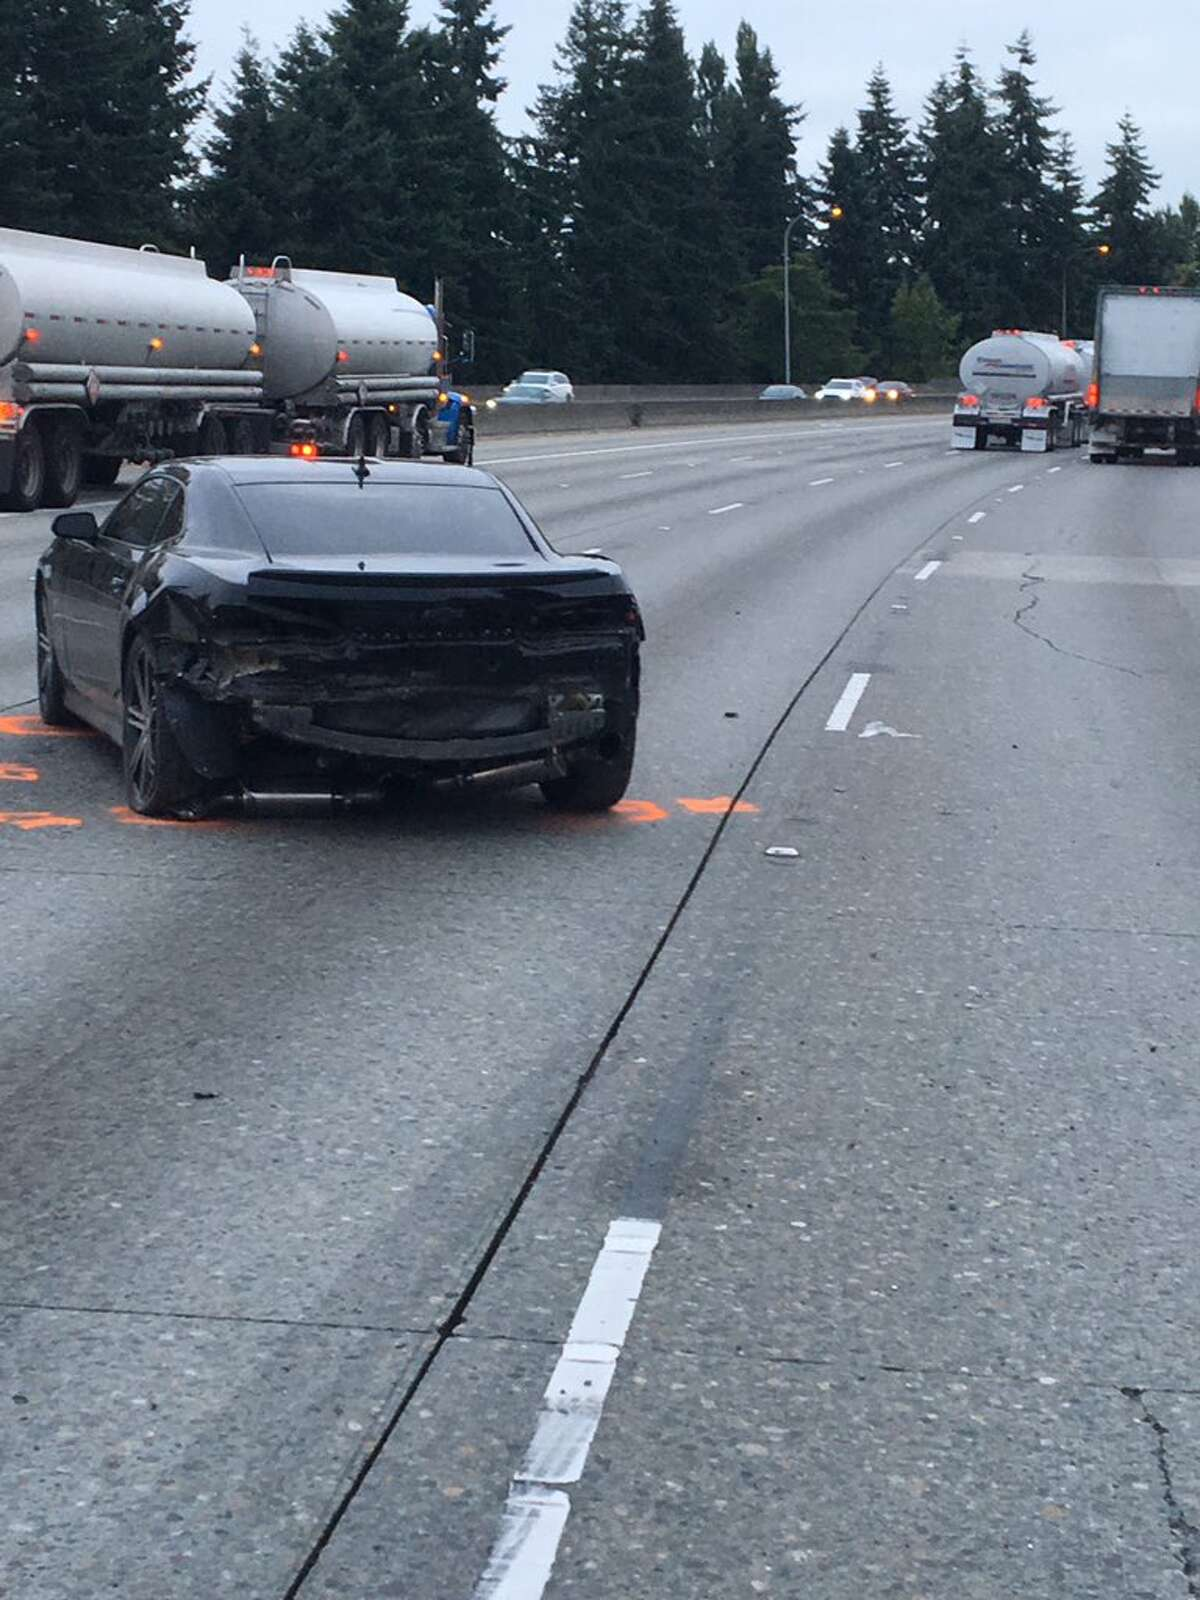 A suspected DUI driver rear-ended a Chevrolet Camaro on northbound Interstate 5 in Shoreline early Tuesday morning before he crashed into a semi-trailer tractor, seen on the left of this photo.